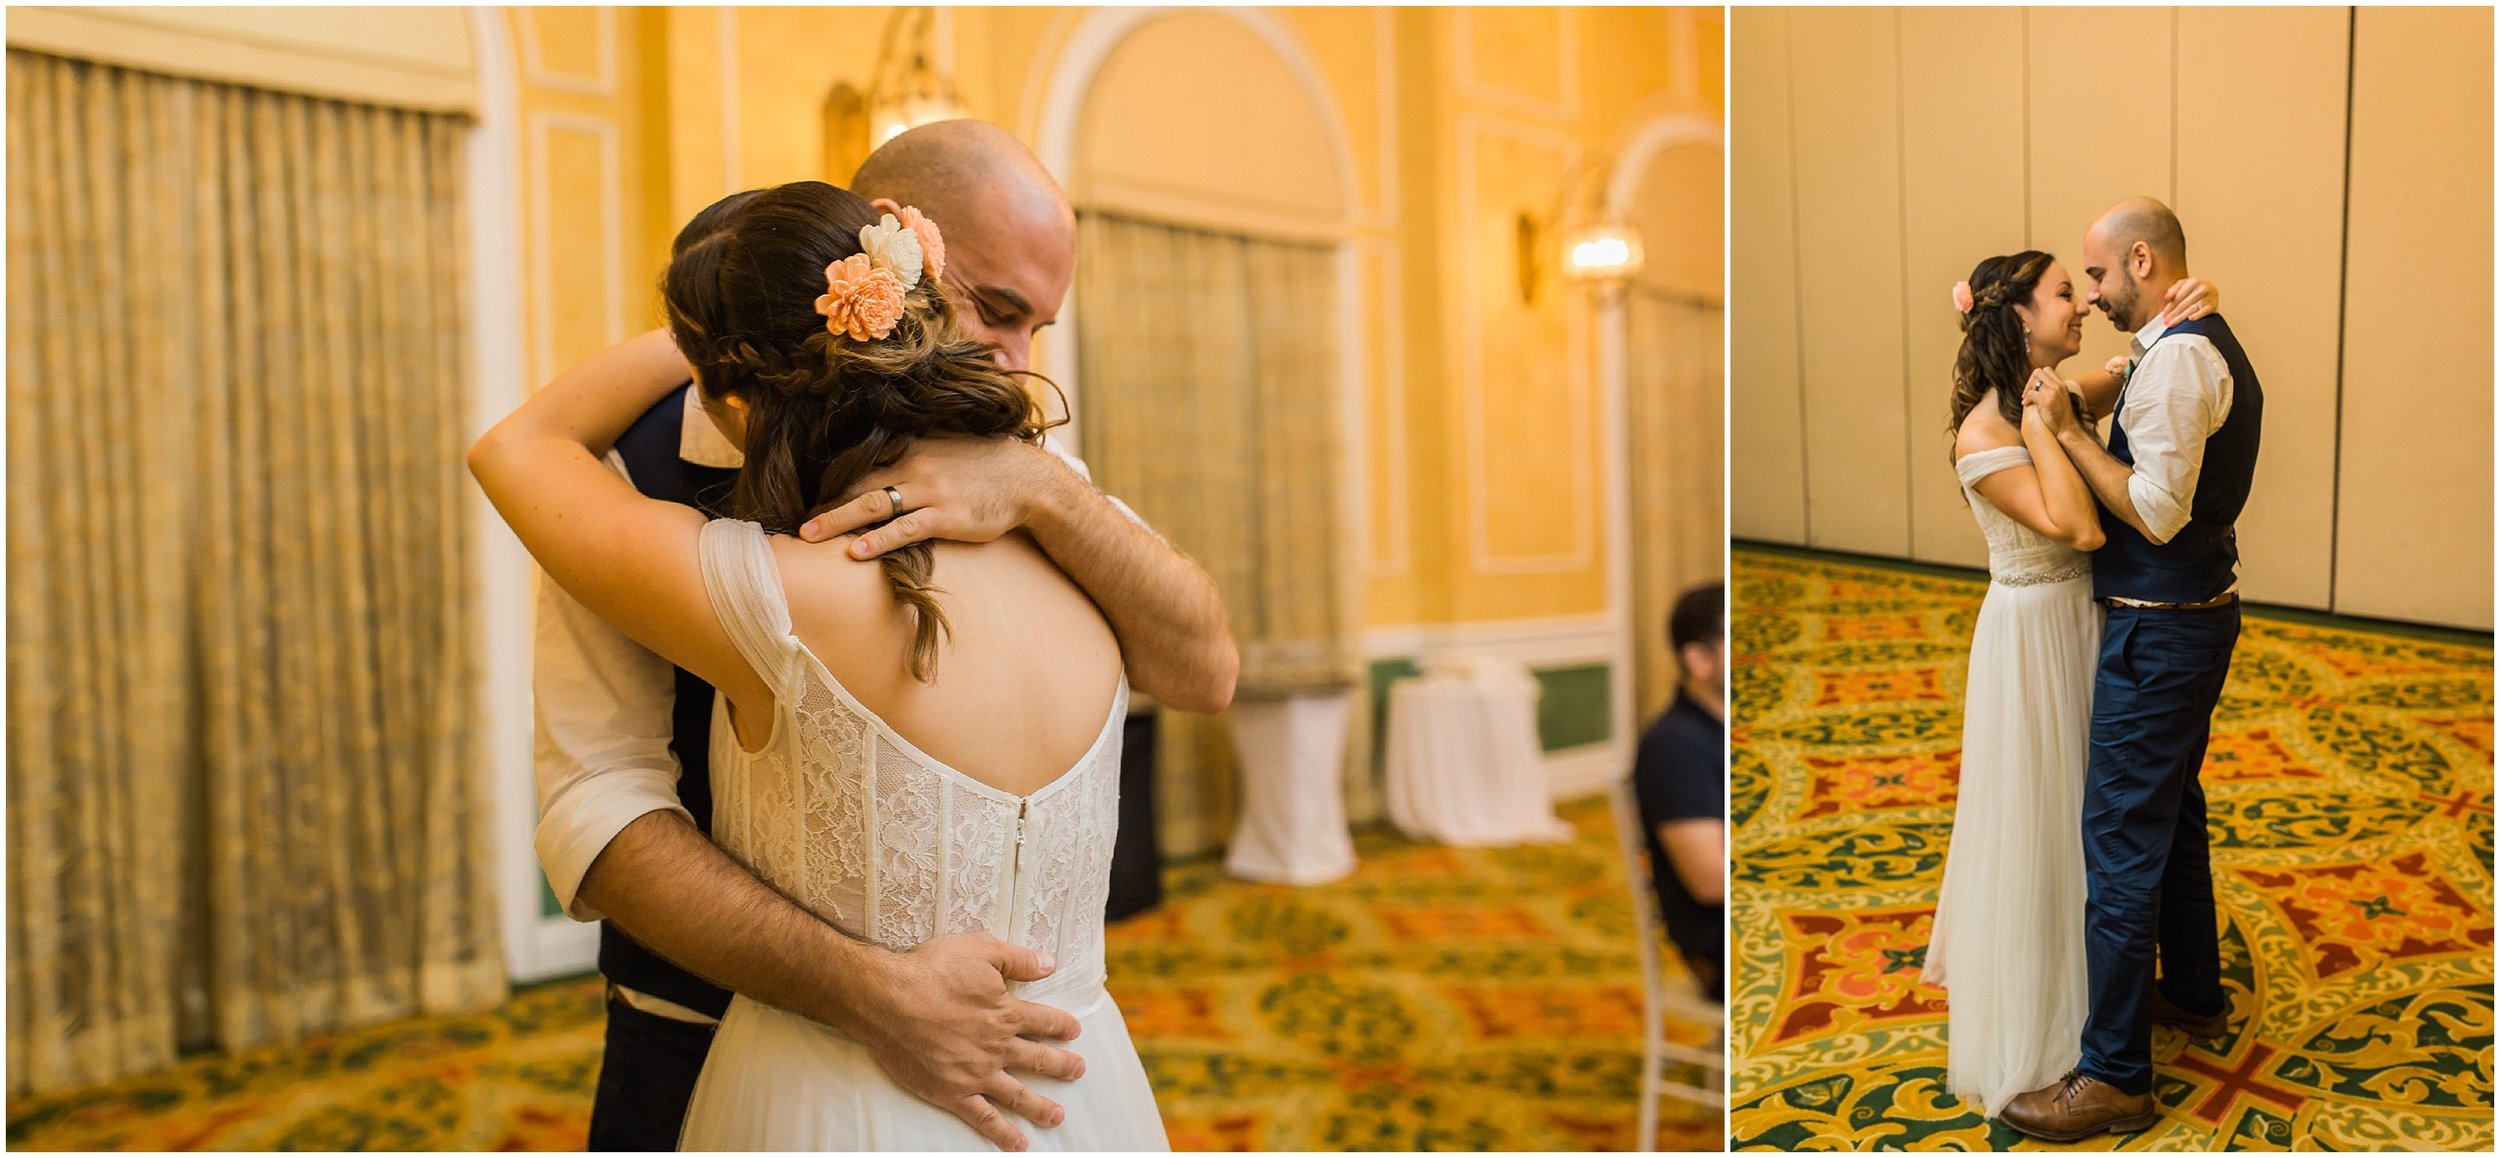 Nina+Vic Wedding Highlights-212.jpg